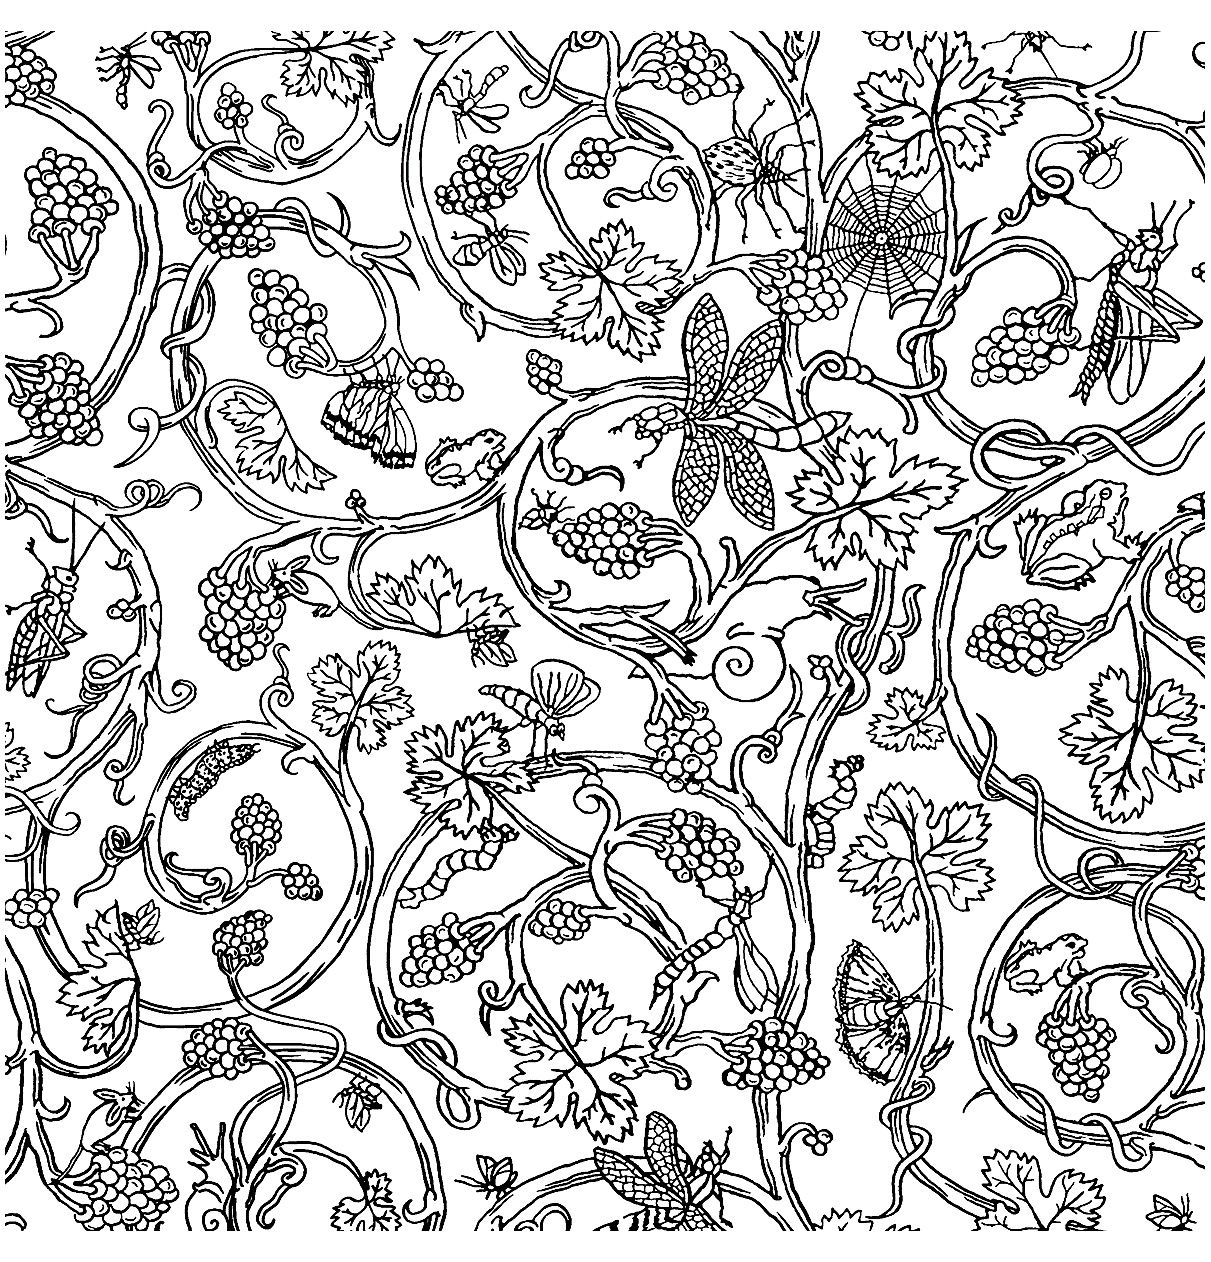 free coloring page painted paper insects vivienne westwood patterns inspired by - Insect Coloring Page